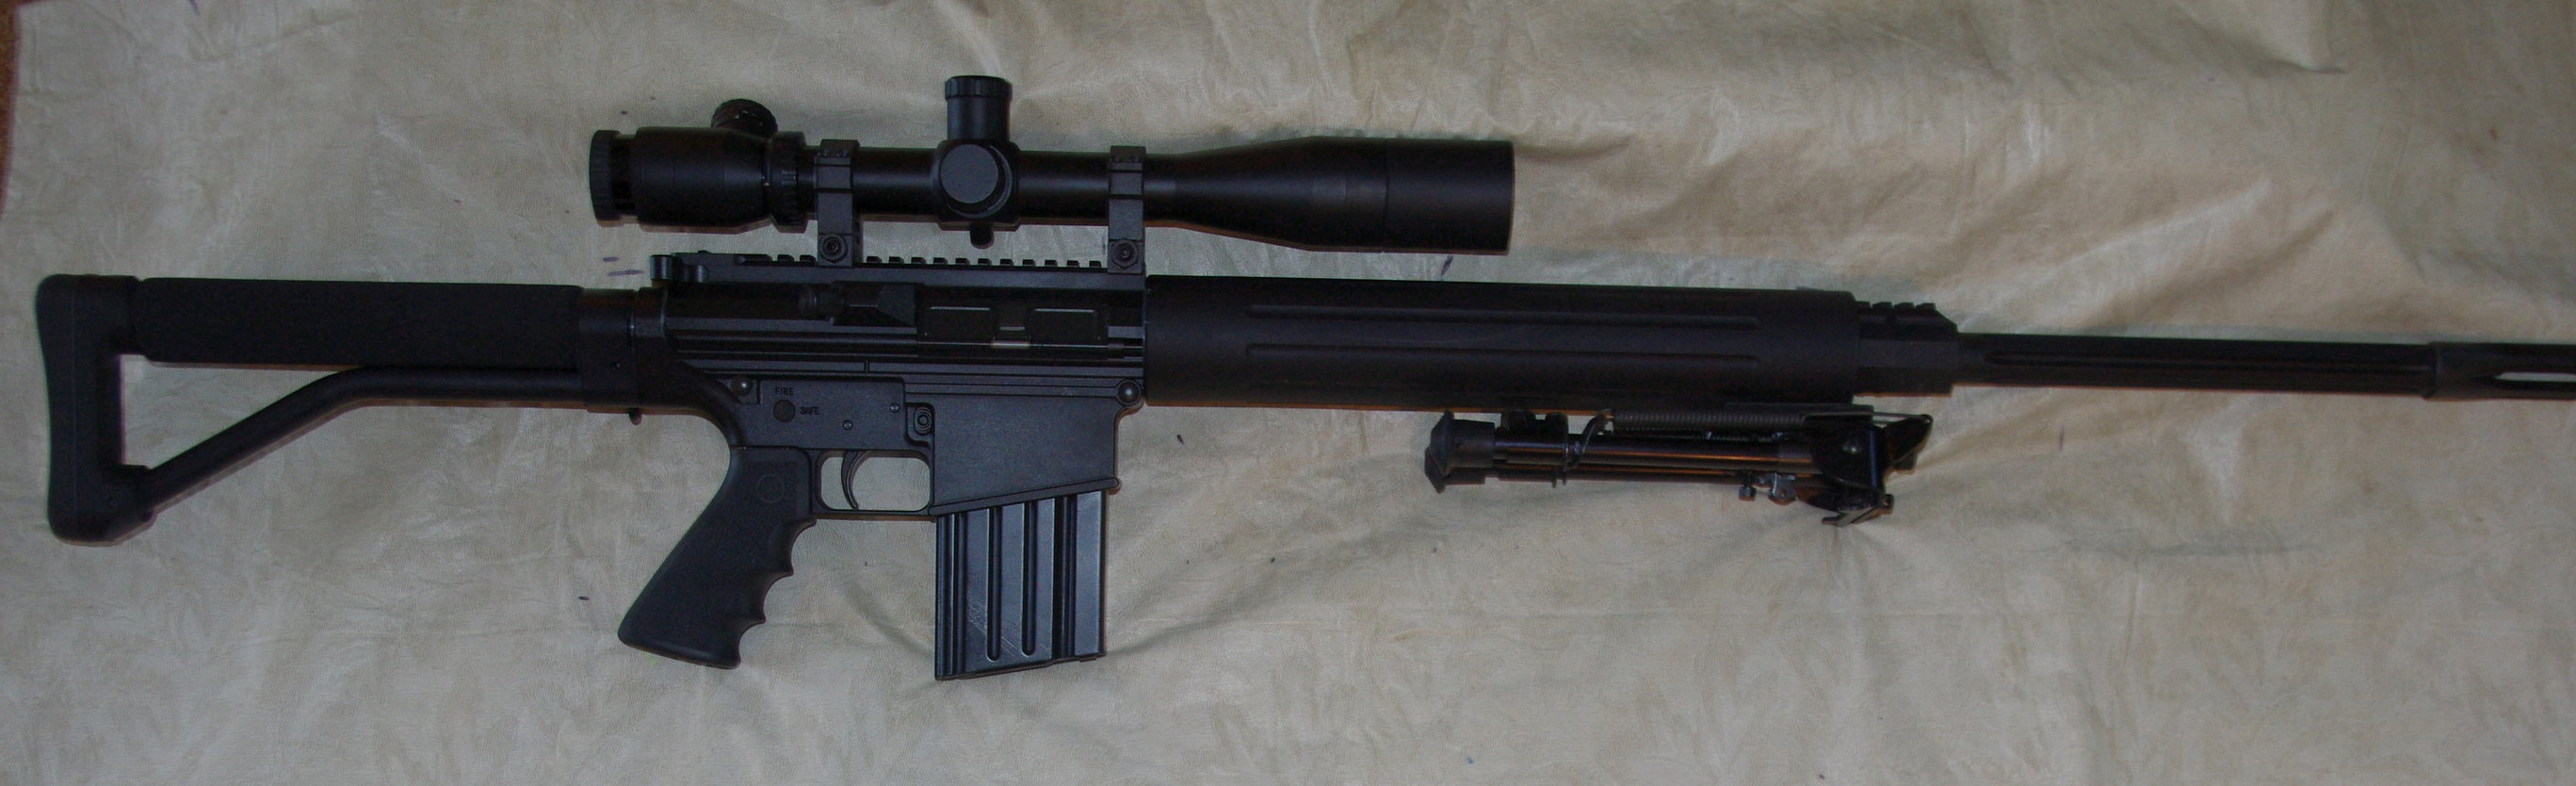 Click image for larger version.  Name:Rifle LR308.jpg Views:3 Size:306.2 KB ID:1291529